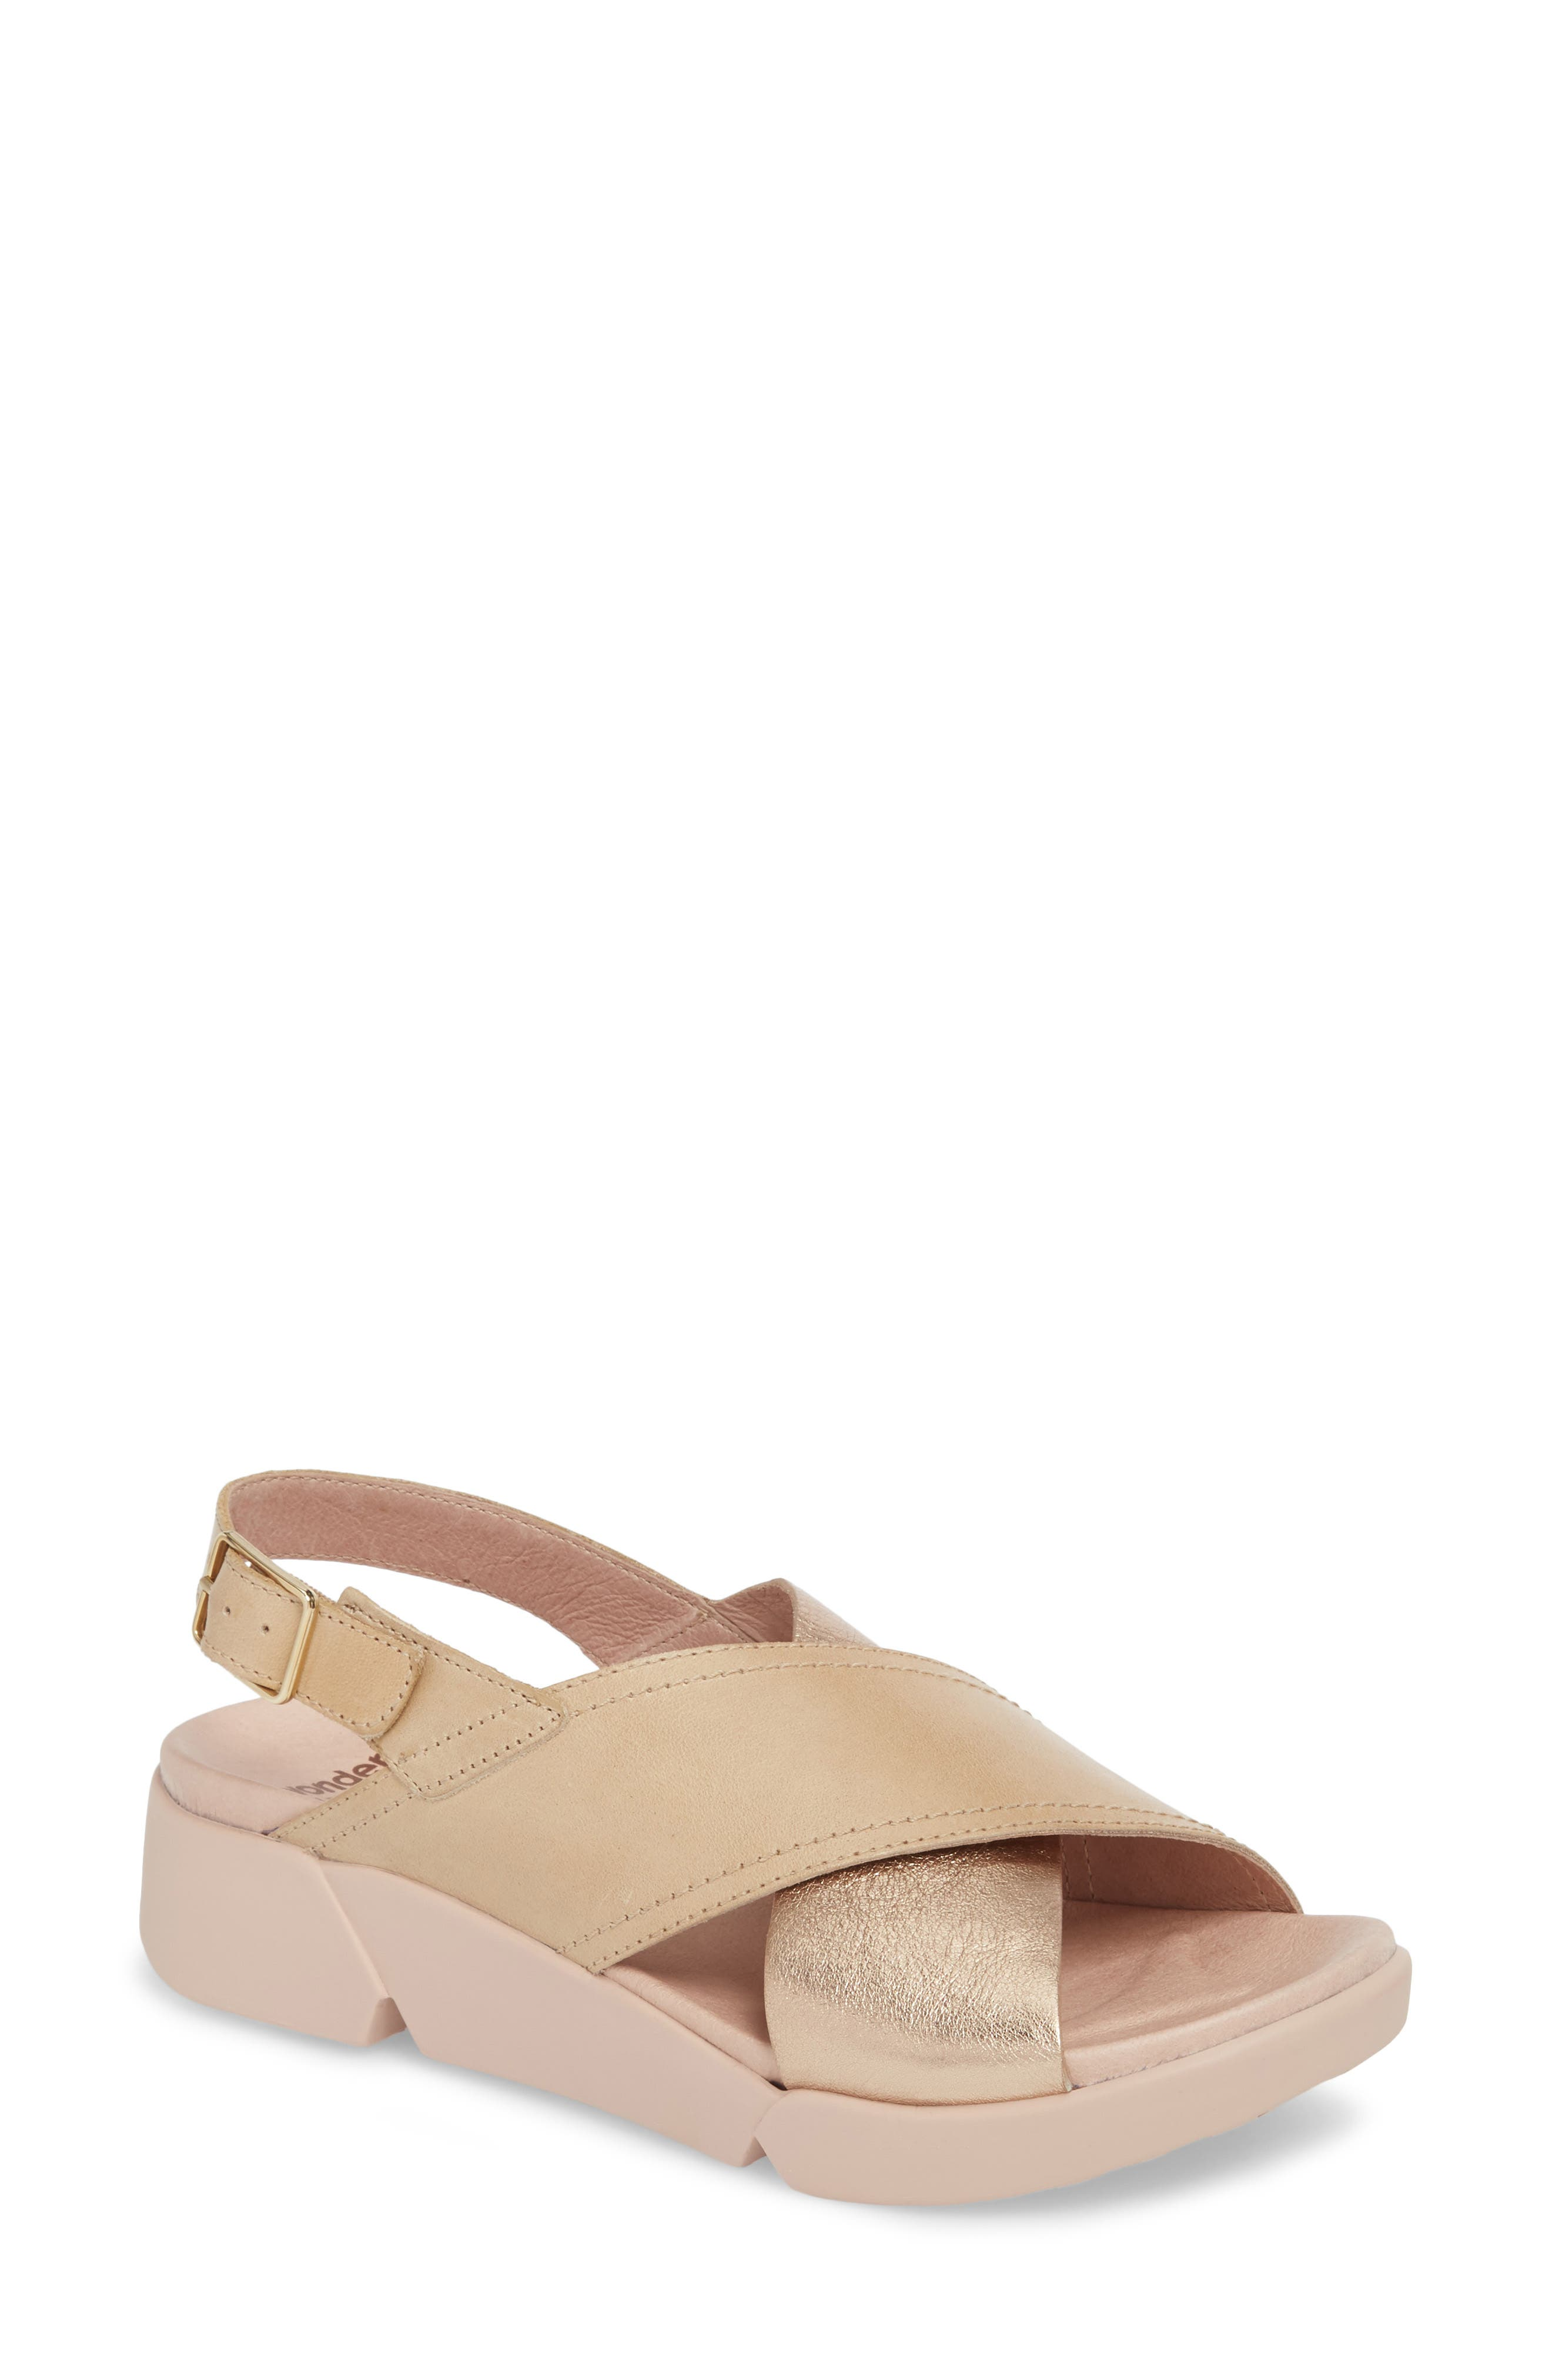 Platform Wedge Sandal,                             Main thumbnail 1, color,                             Oro/ Taupe Leather